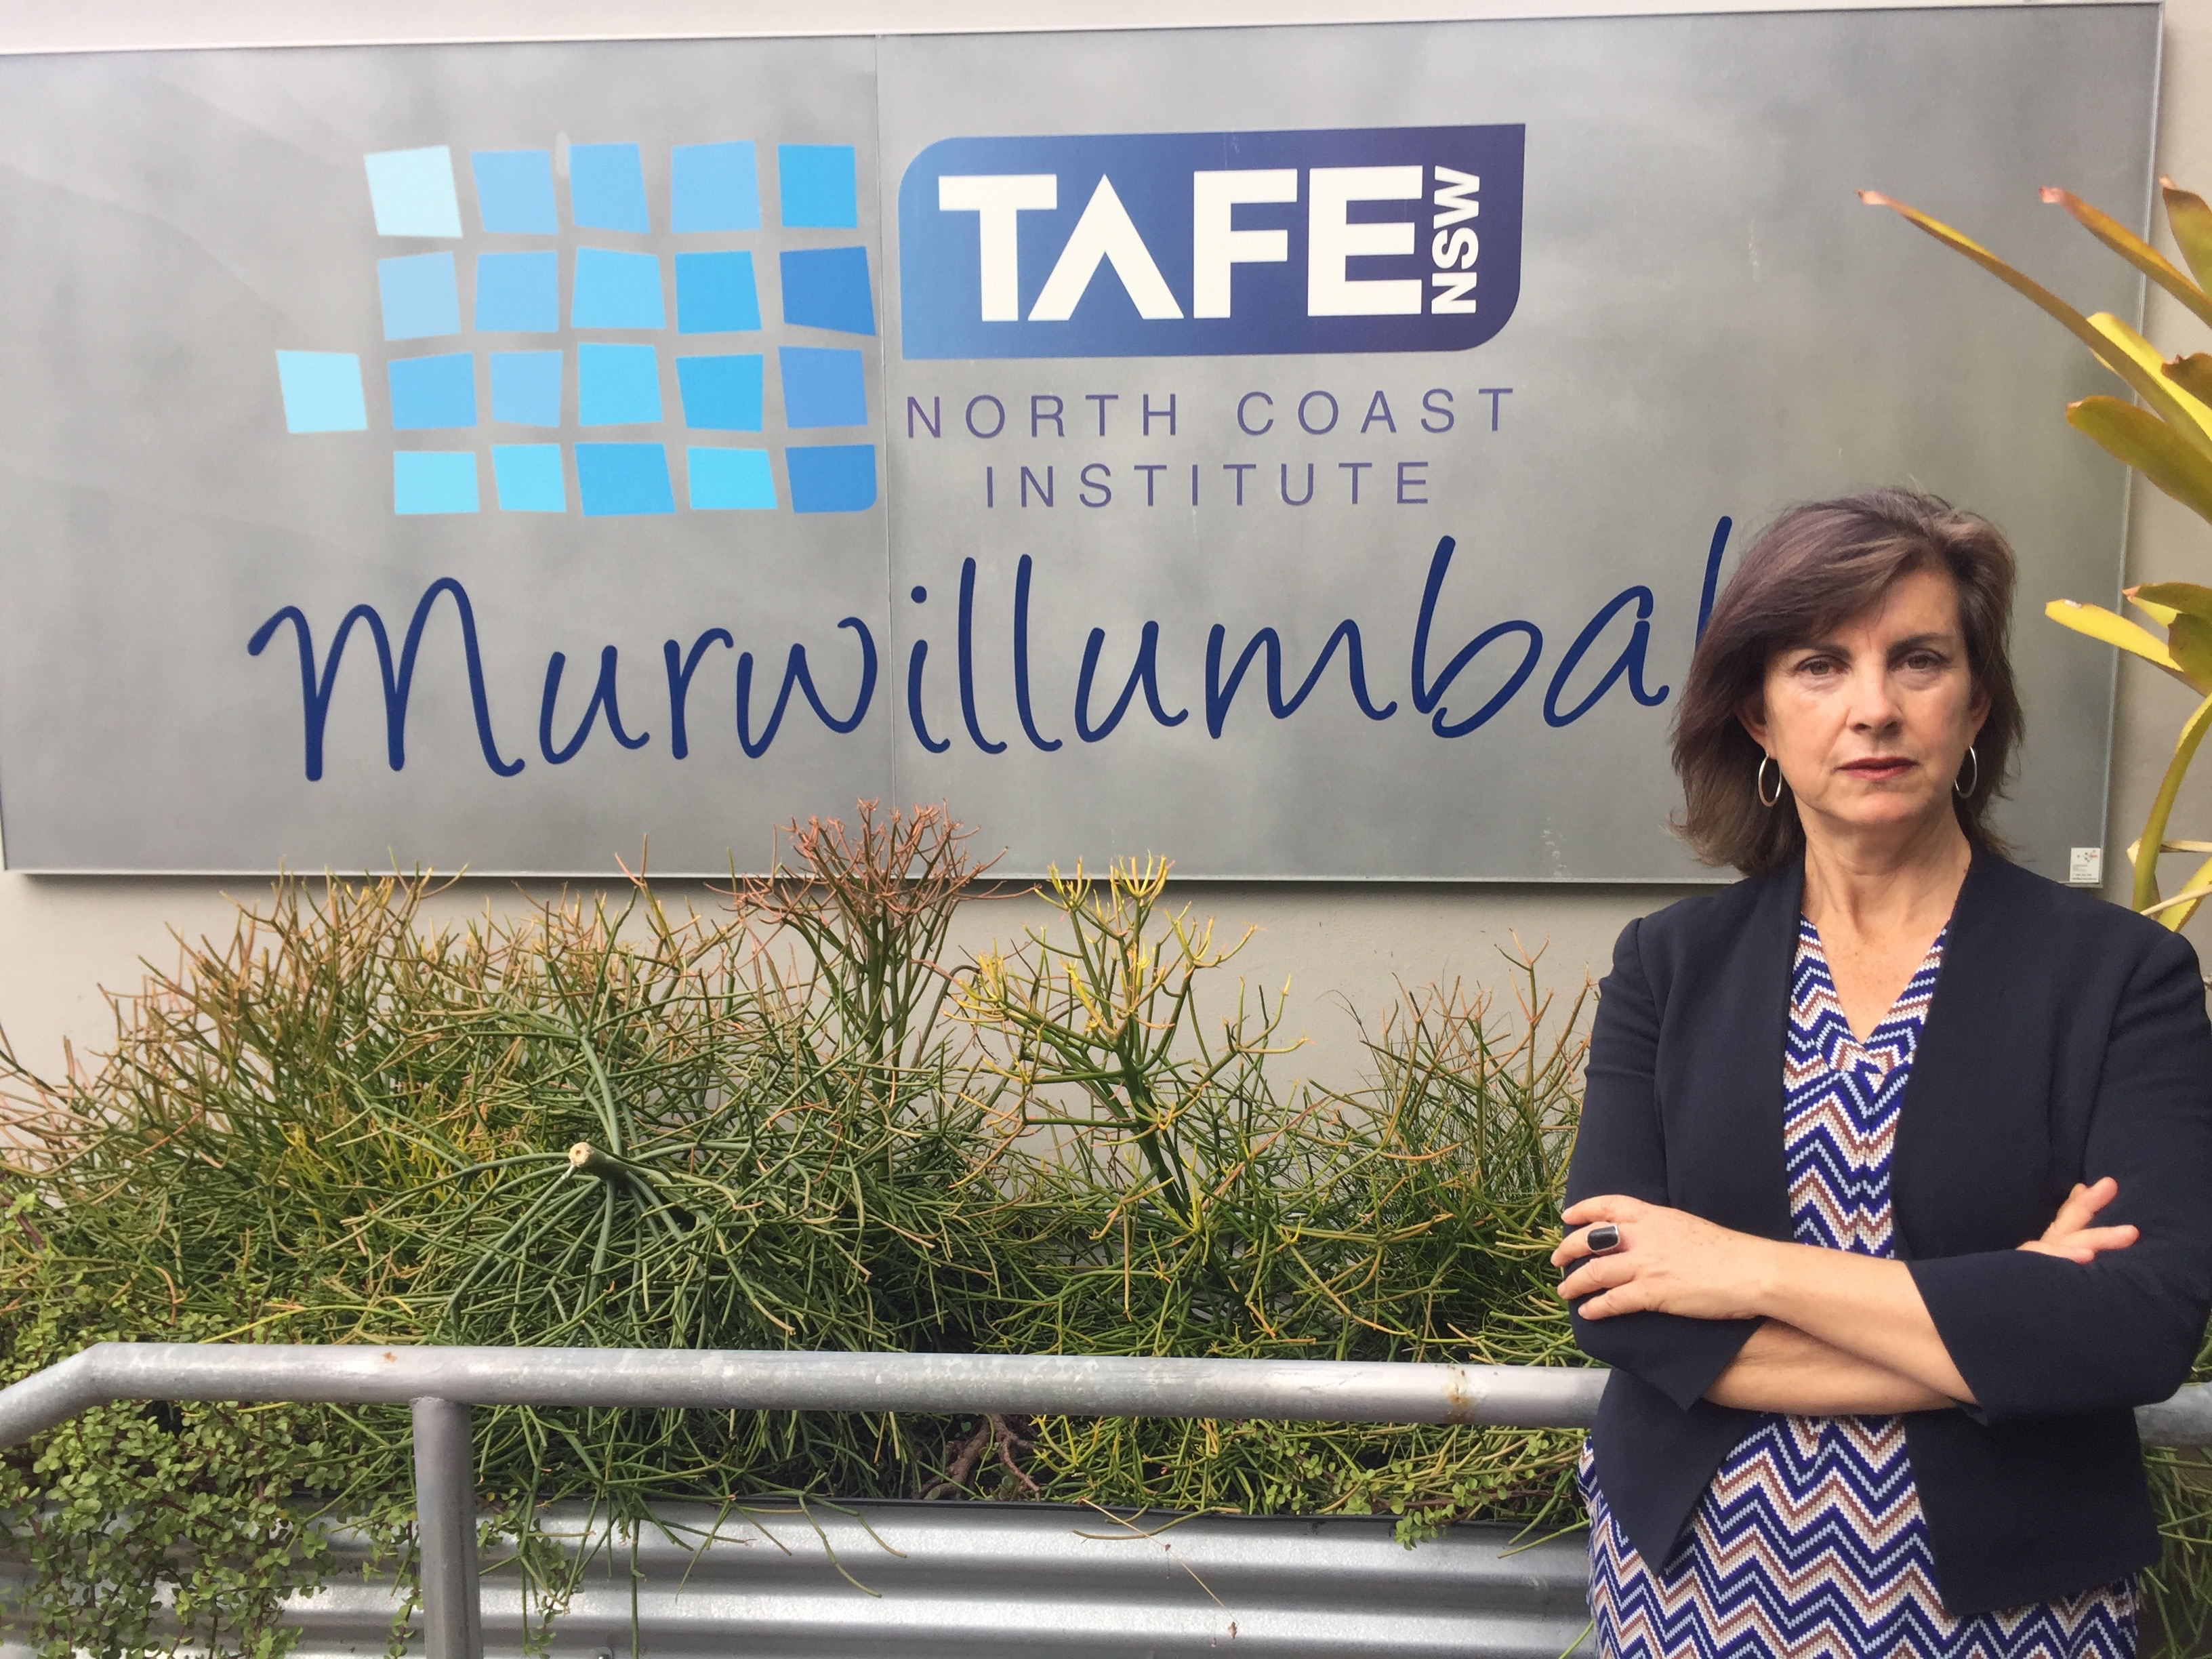 Save Murwillumbah TAFE! - Dawn Walker MP